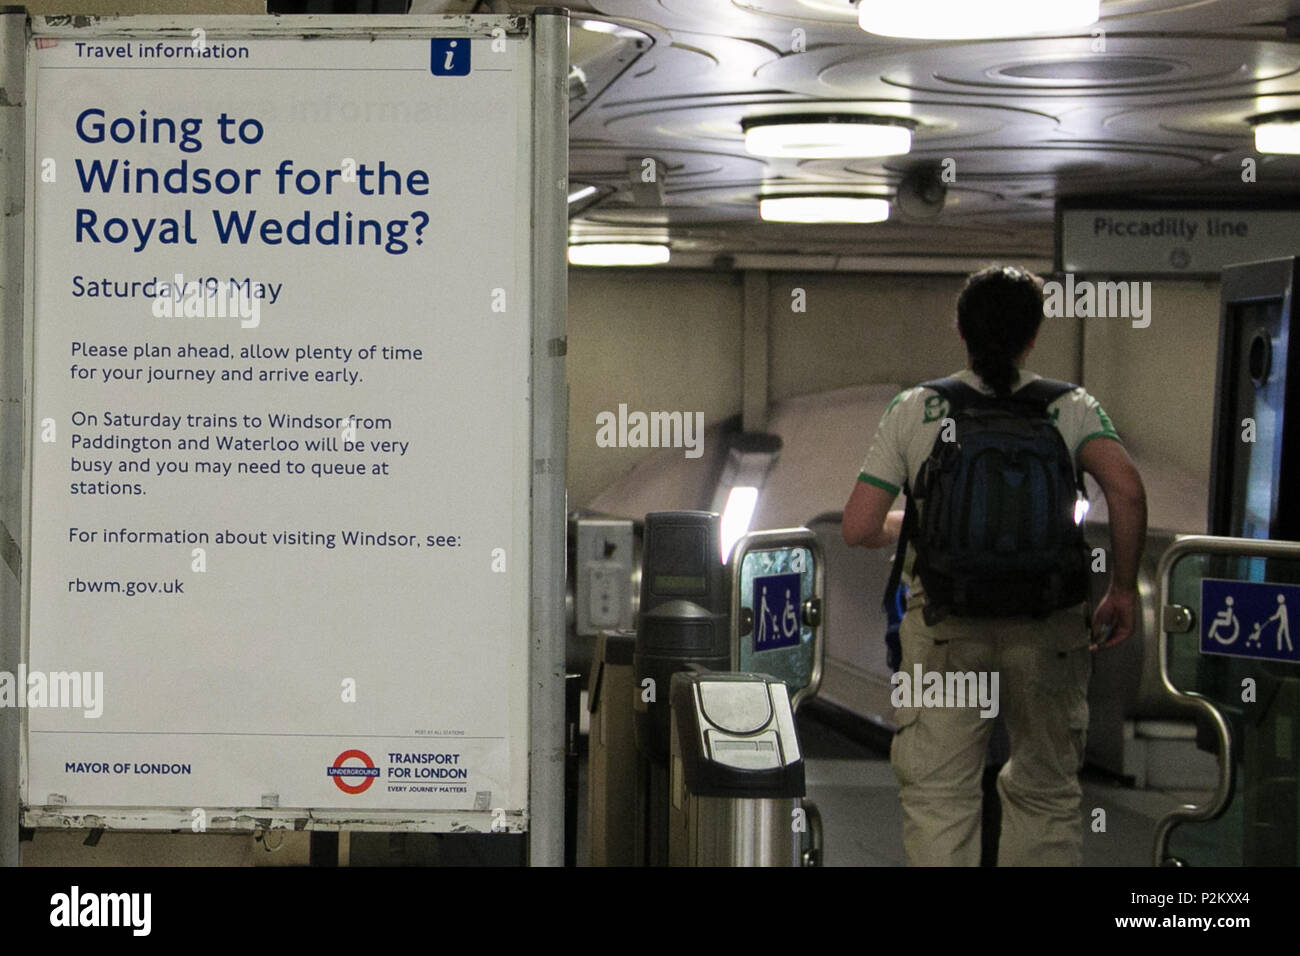 London Travel Advice >> Transport For London S Poster At Manor House Station On Travel